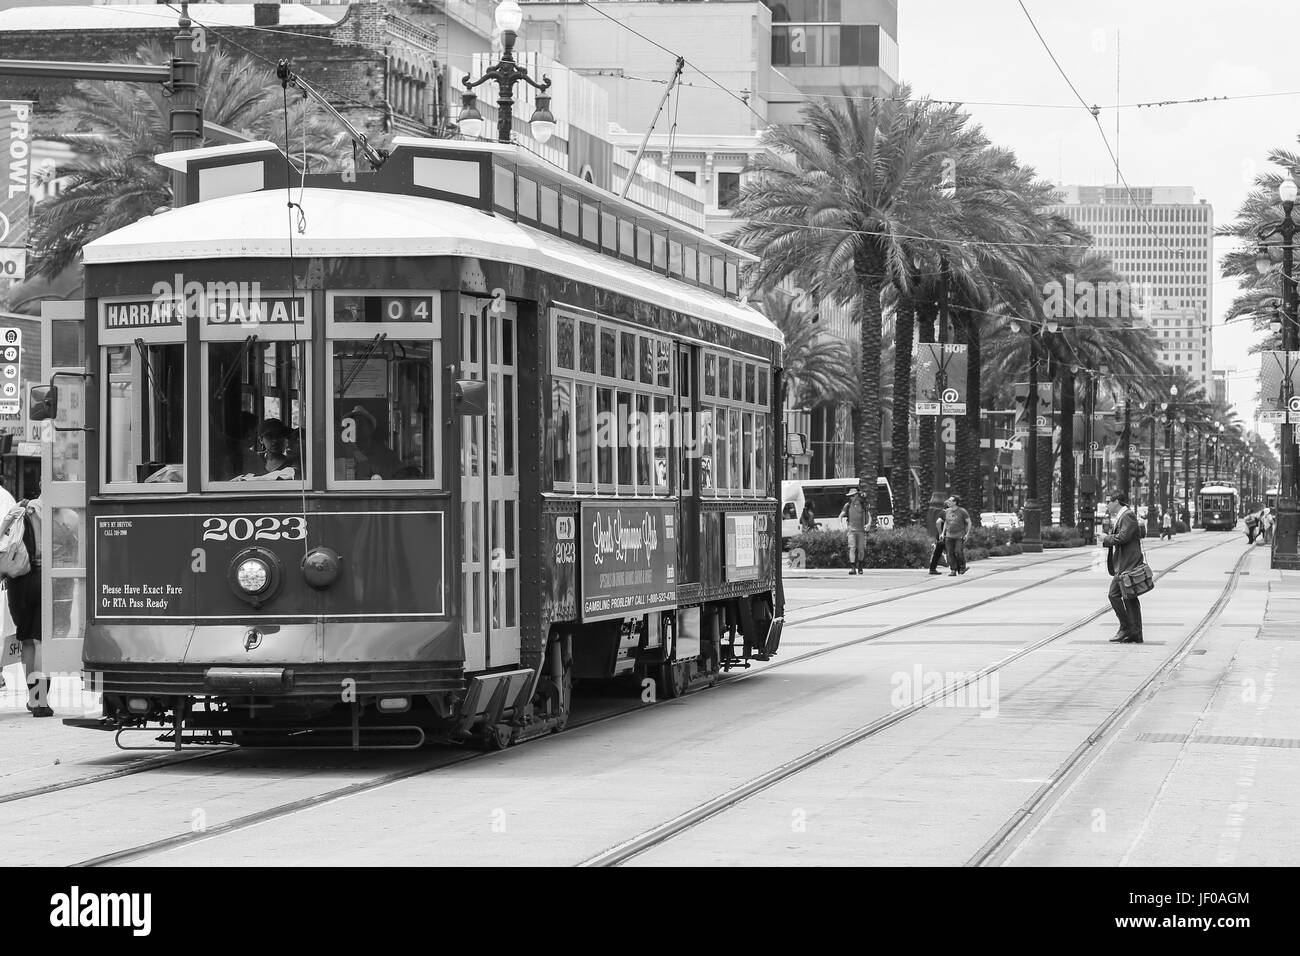 New Orleans Street Cars: New Orleans Streetcar Stock Photos & New Orleans Streetcar